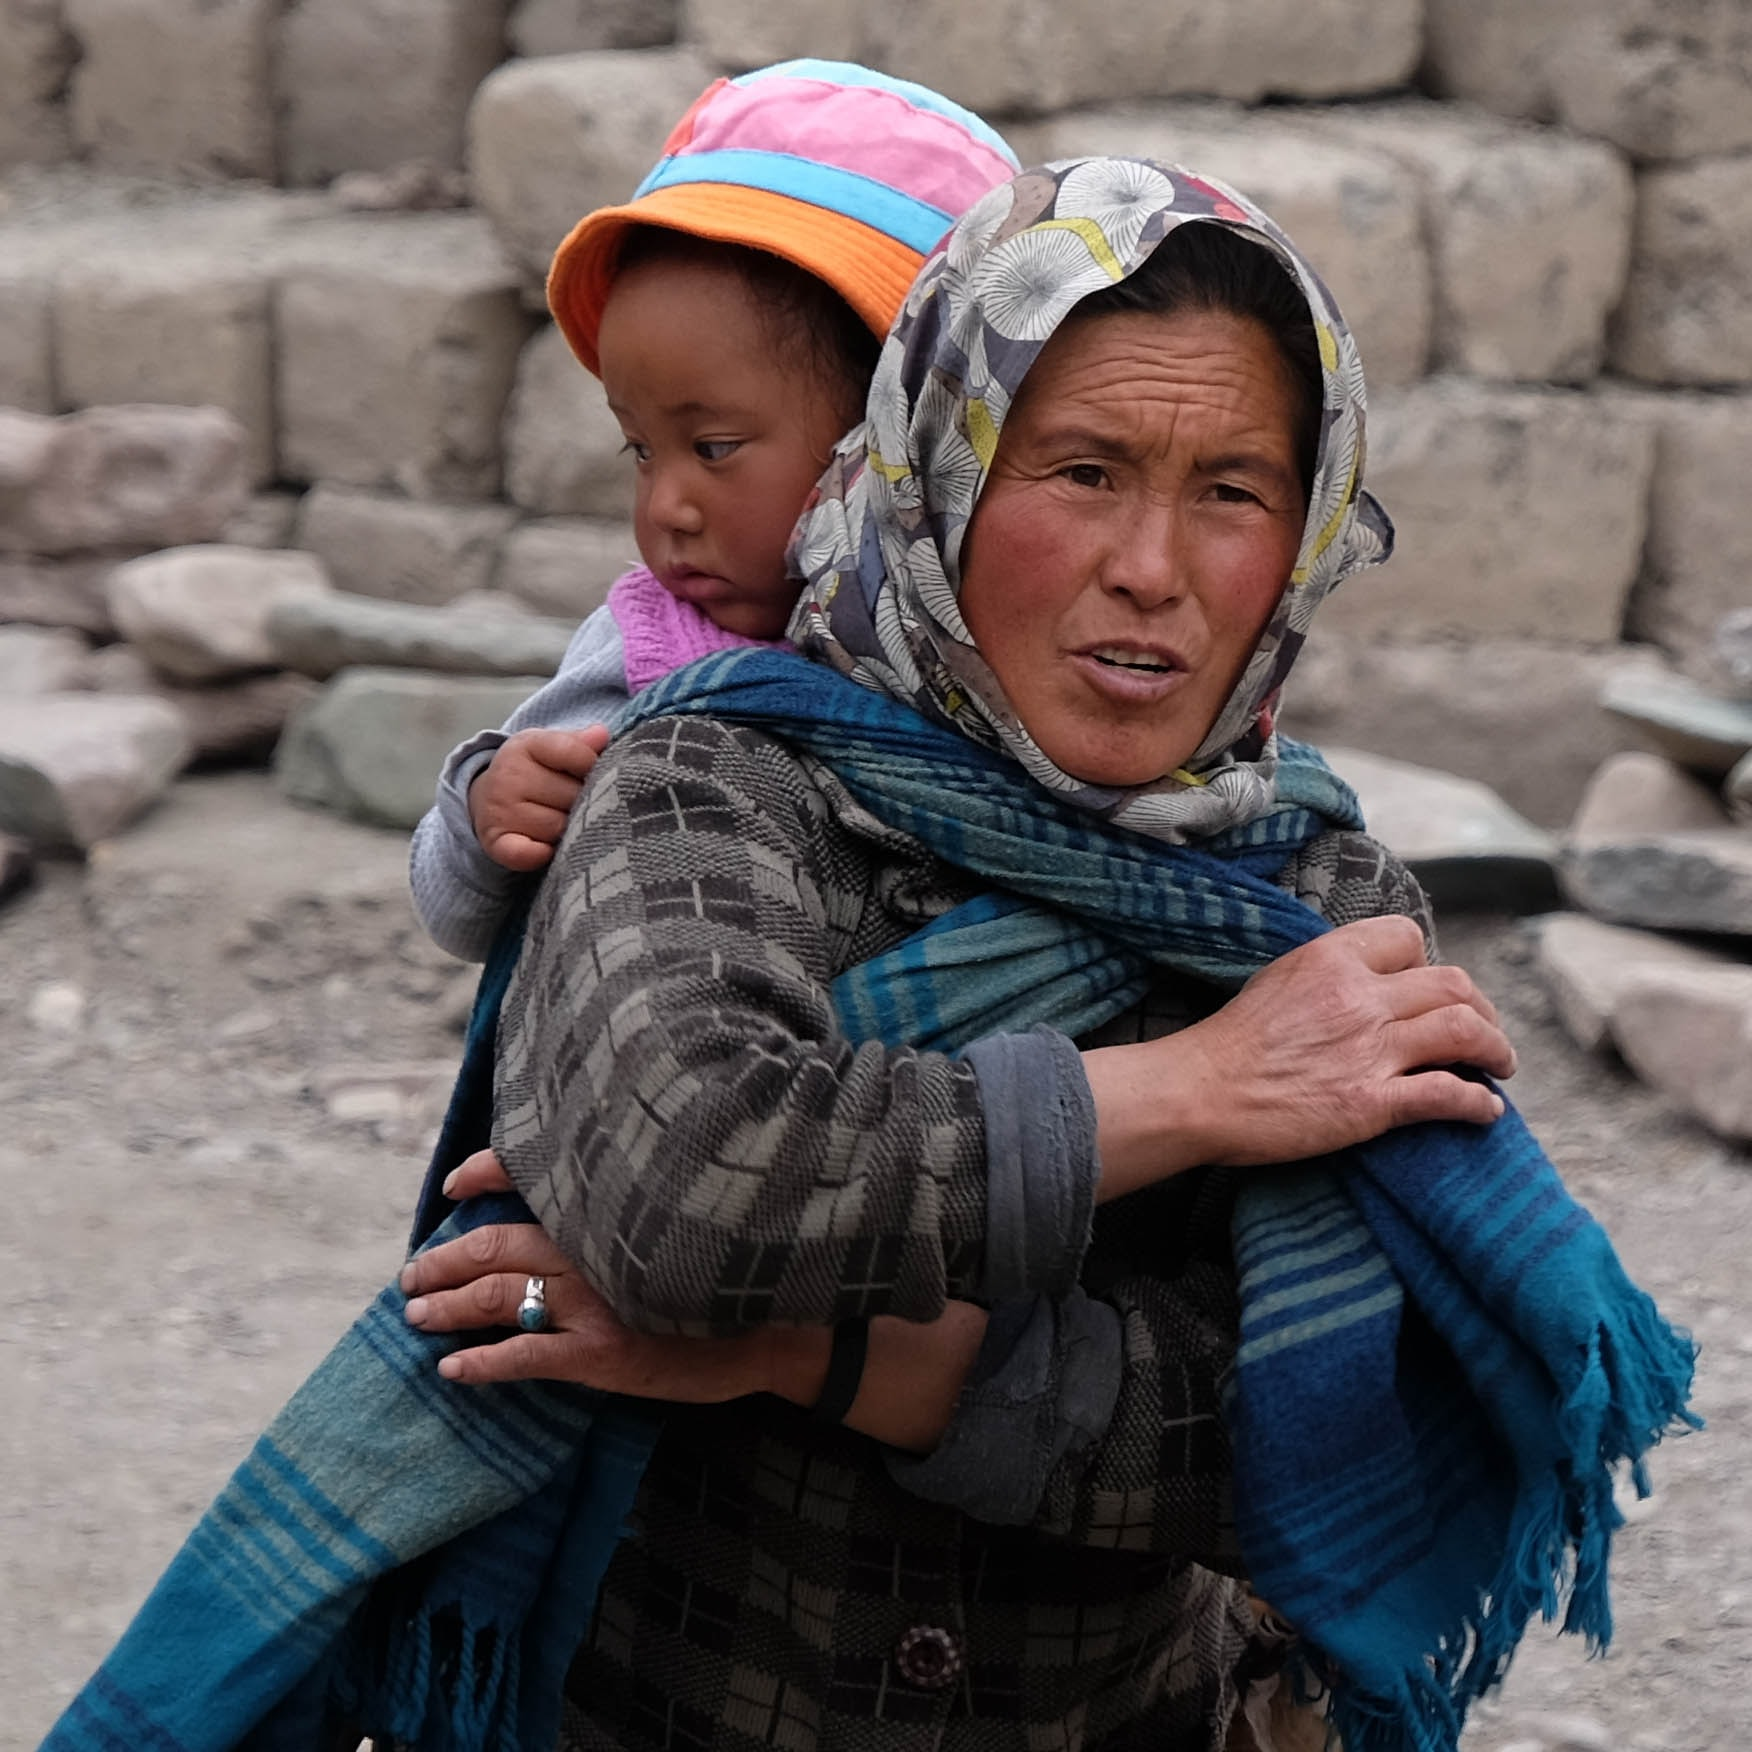 woman wearing scarf while carrying a girl at her back during daytime